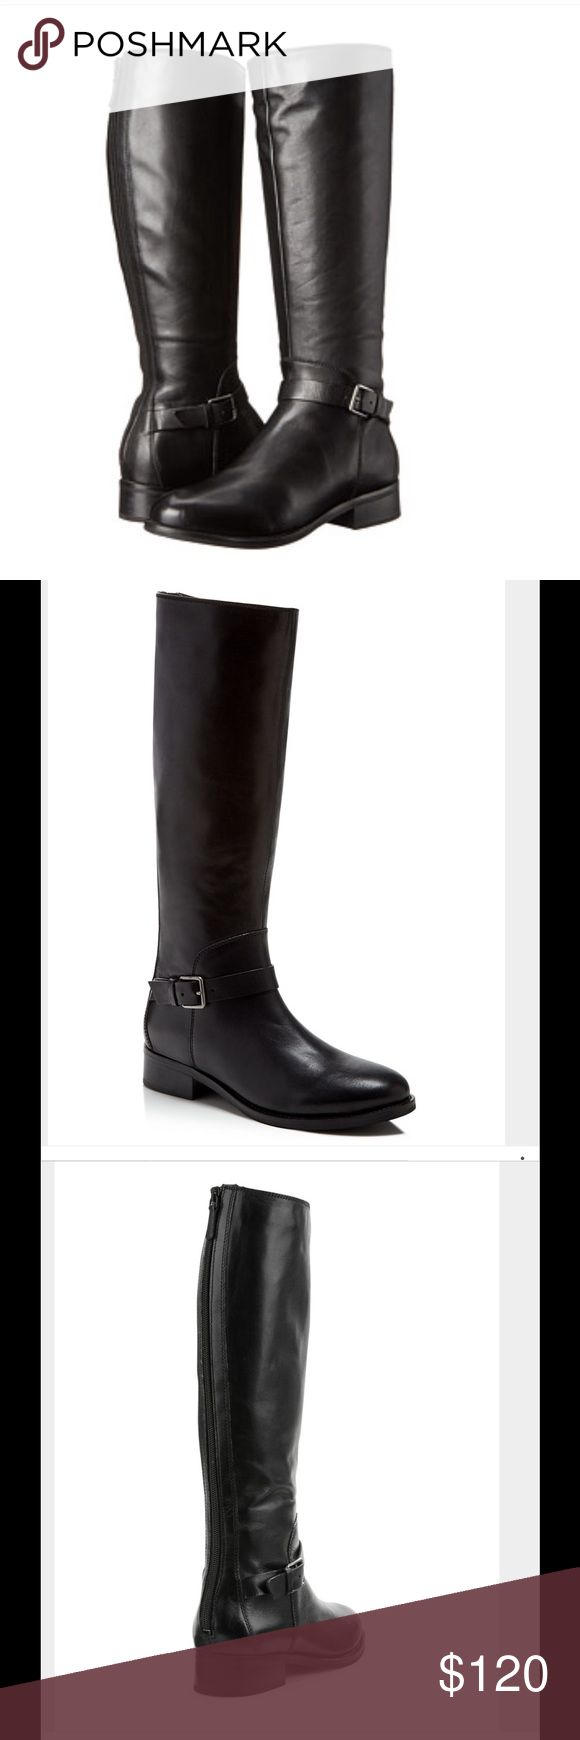 """Cole Haan Black High Boot A back zip closure completes an equestrian-styled tall boot crafted in genuine leather and finished with a standout buckle strap detail. Almond toe, topstitched detail, bottom shaft adjustable buckle strap detail, back zip closure. About 16.5"""" shaft height, 15"""" opening circumference, 1.5"""" heel. Leather upper, manmade sole. Cole Haan Shoes Heeled Boots"""